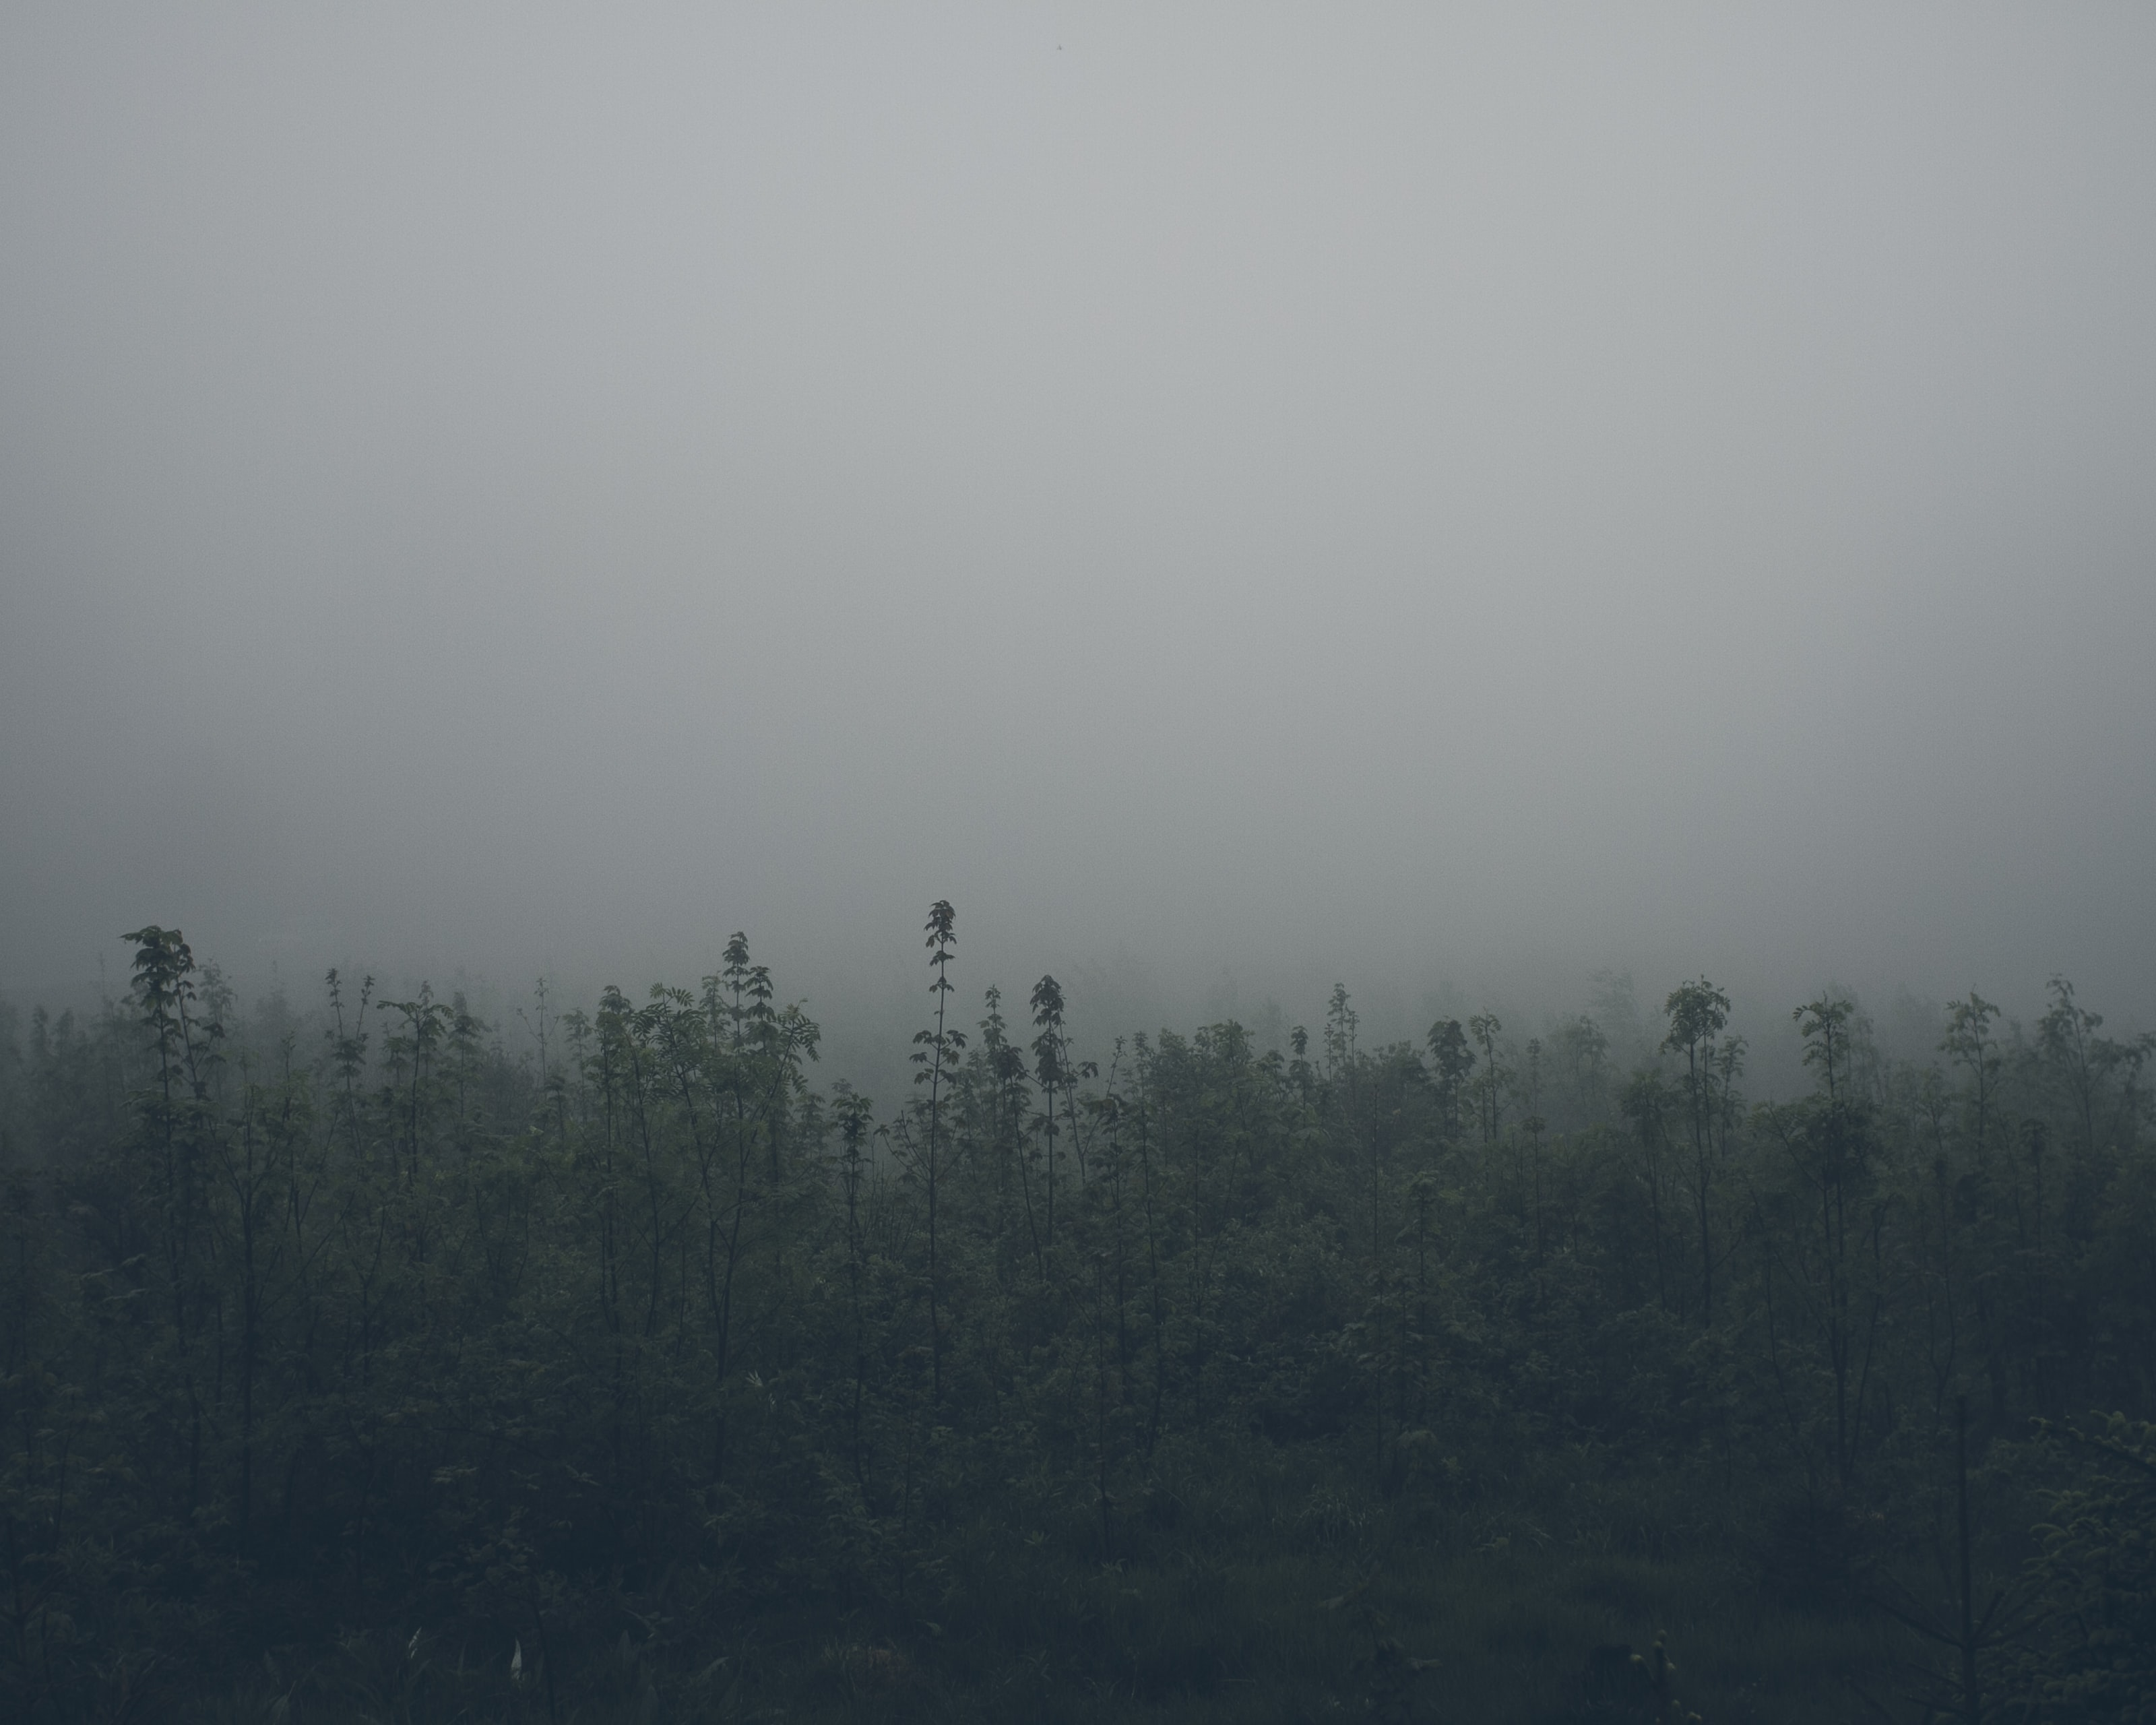 Thick fog over the treetops in a forest